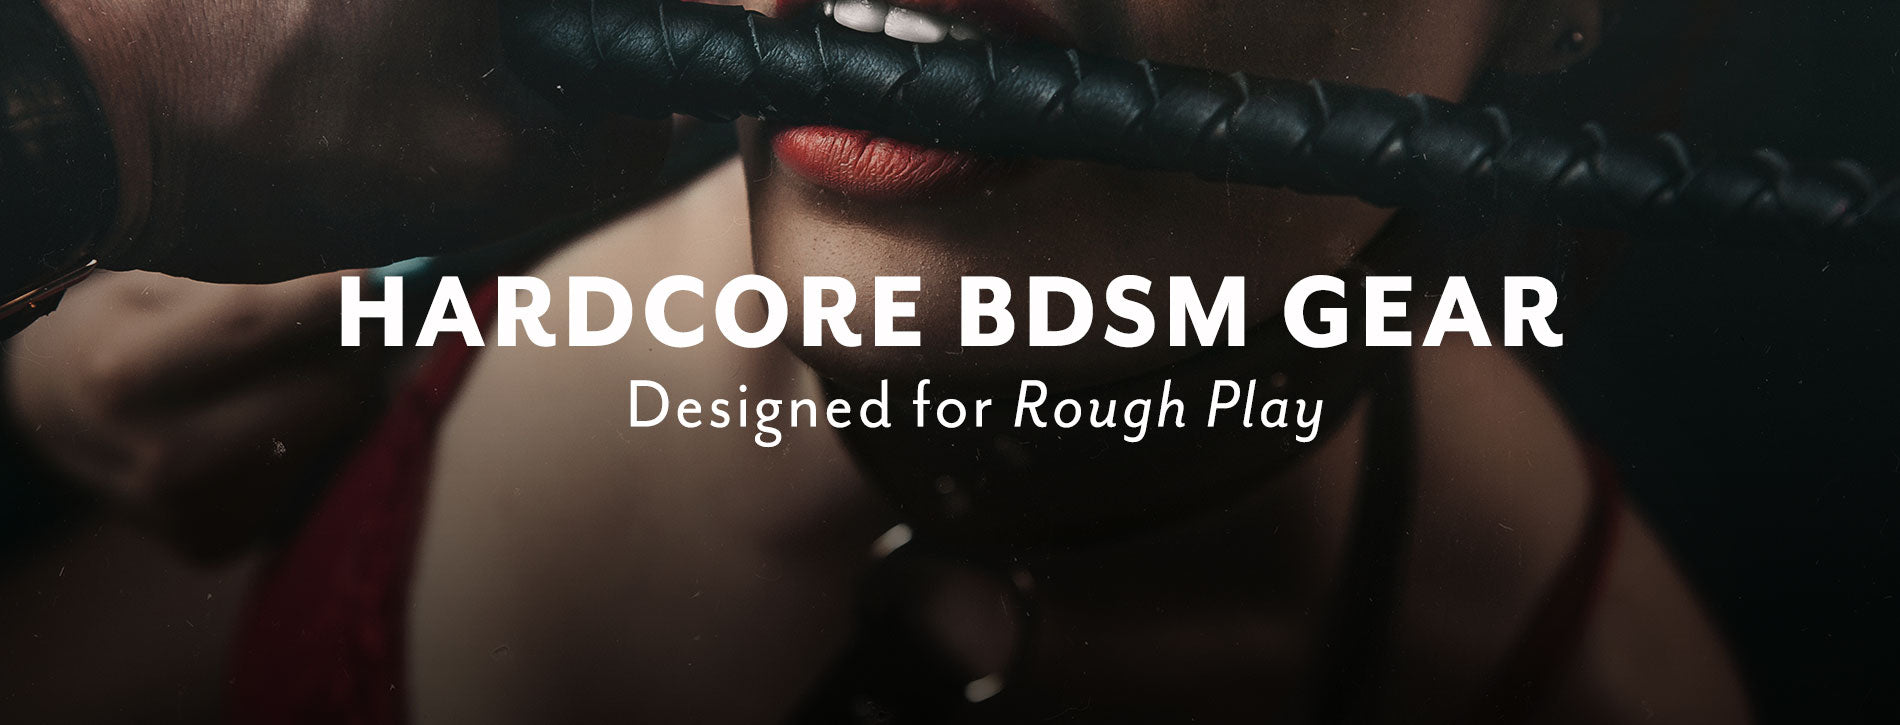 Hardcore BDSM Gear for Rough Play